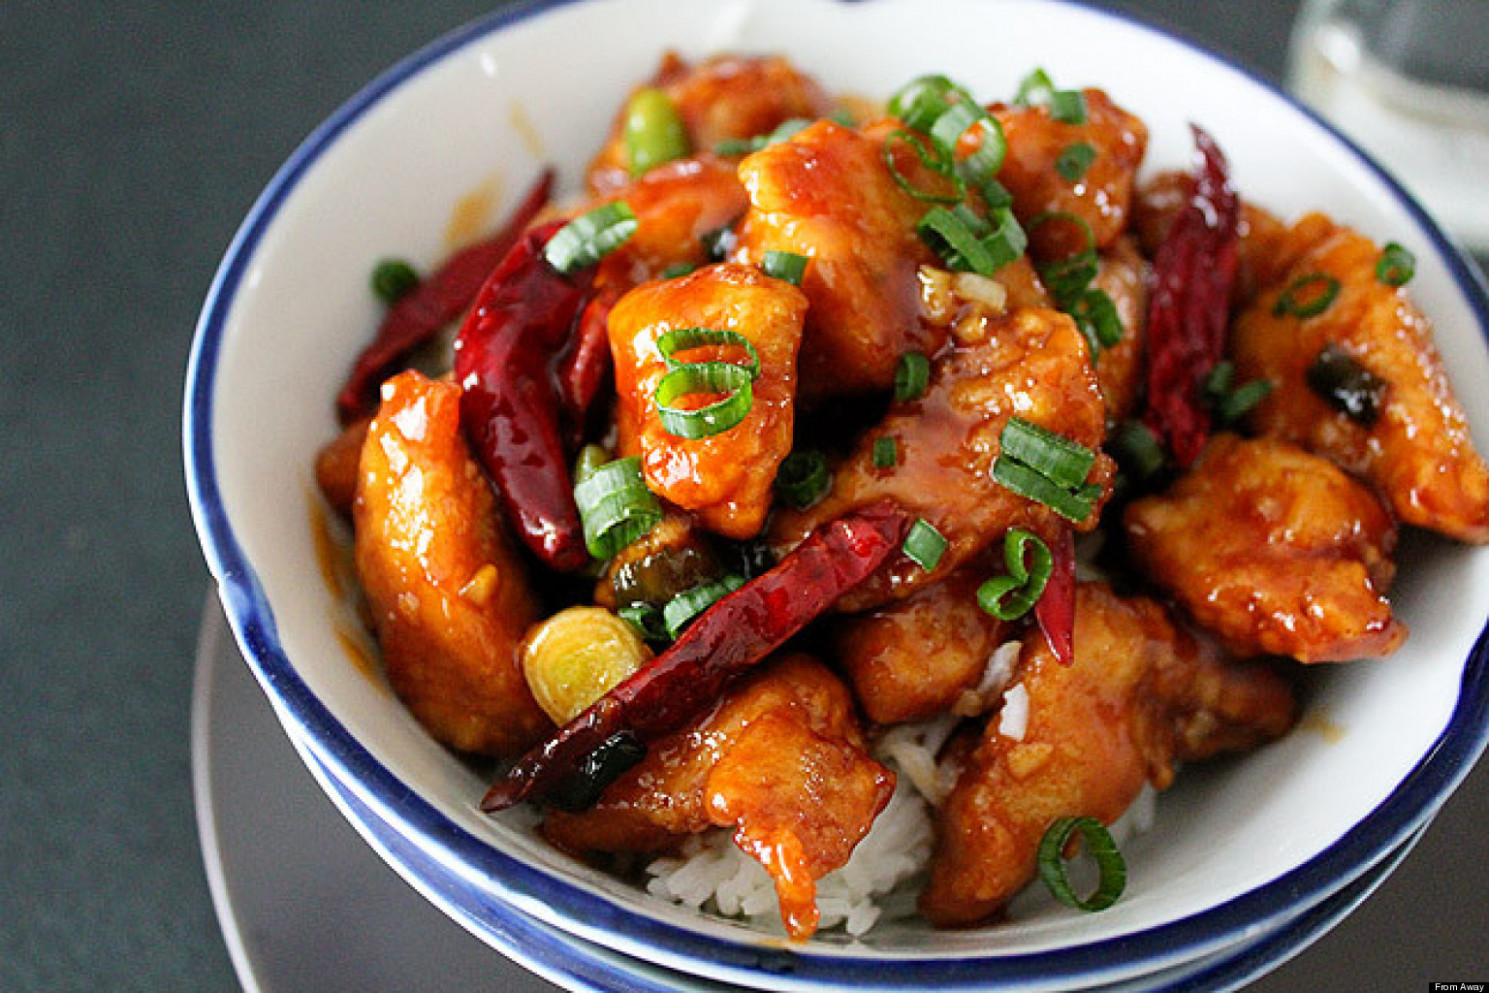 Chinese Takeout Recipes To Make At Home (PHOTOS) | HuffPost